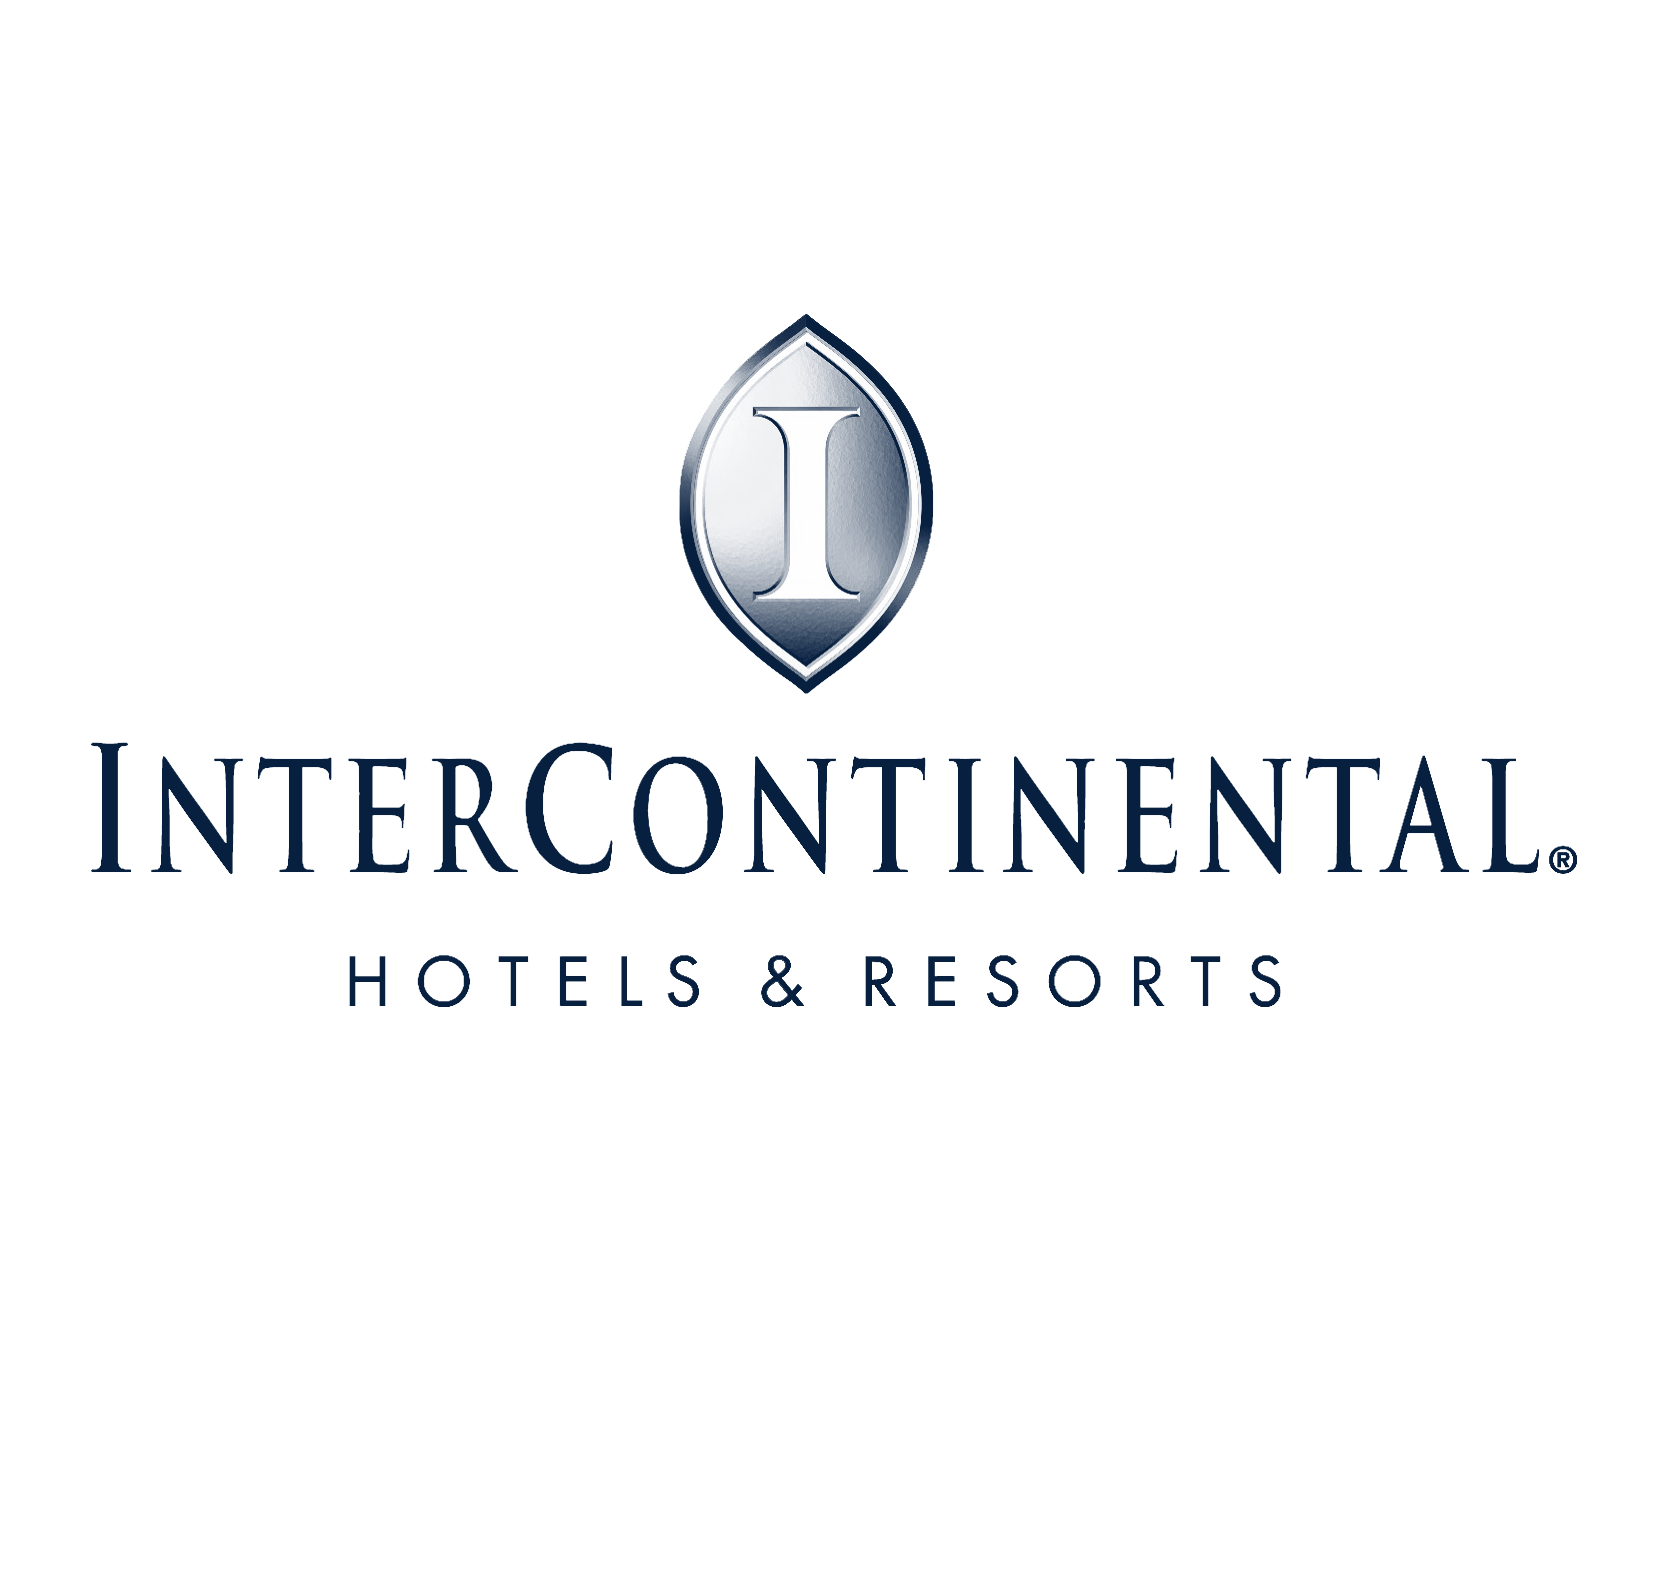 InterContinental-Hotels-Resorts logo.png